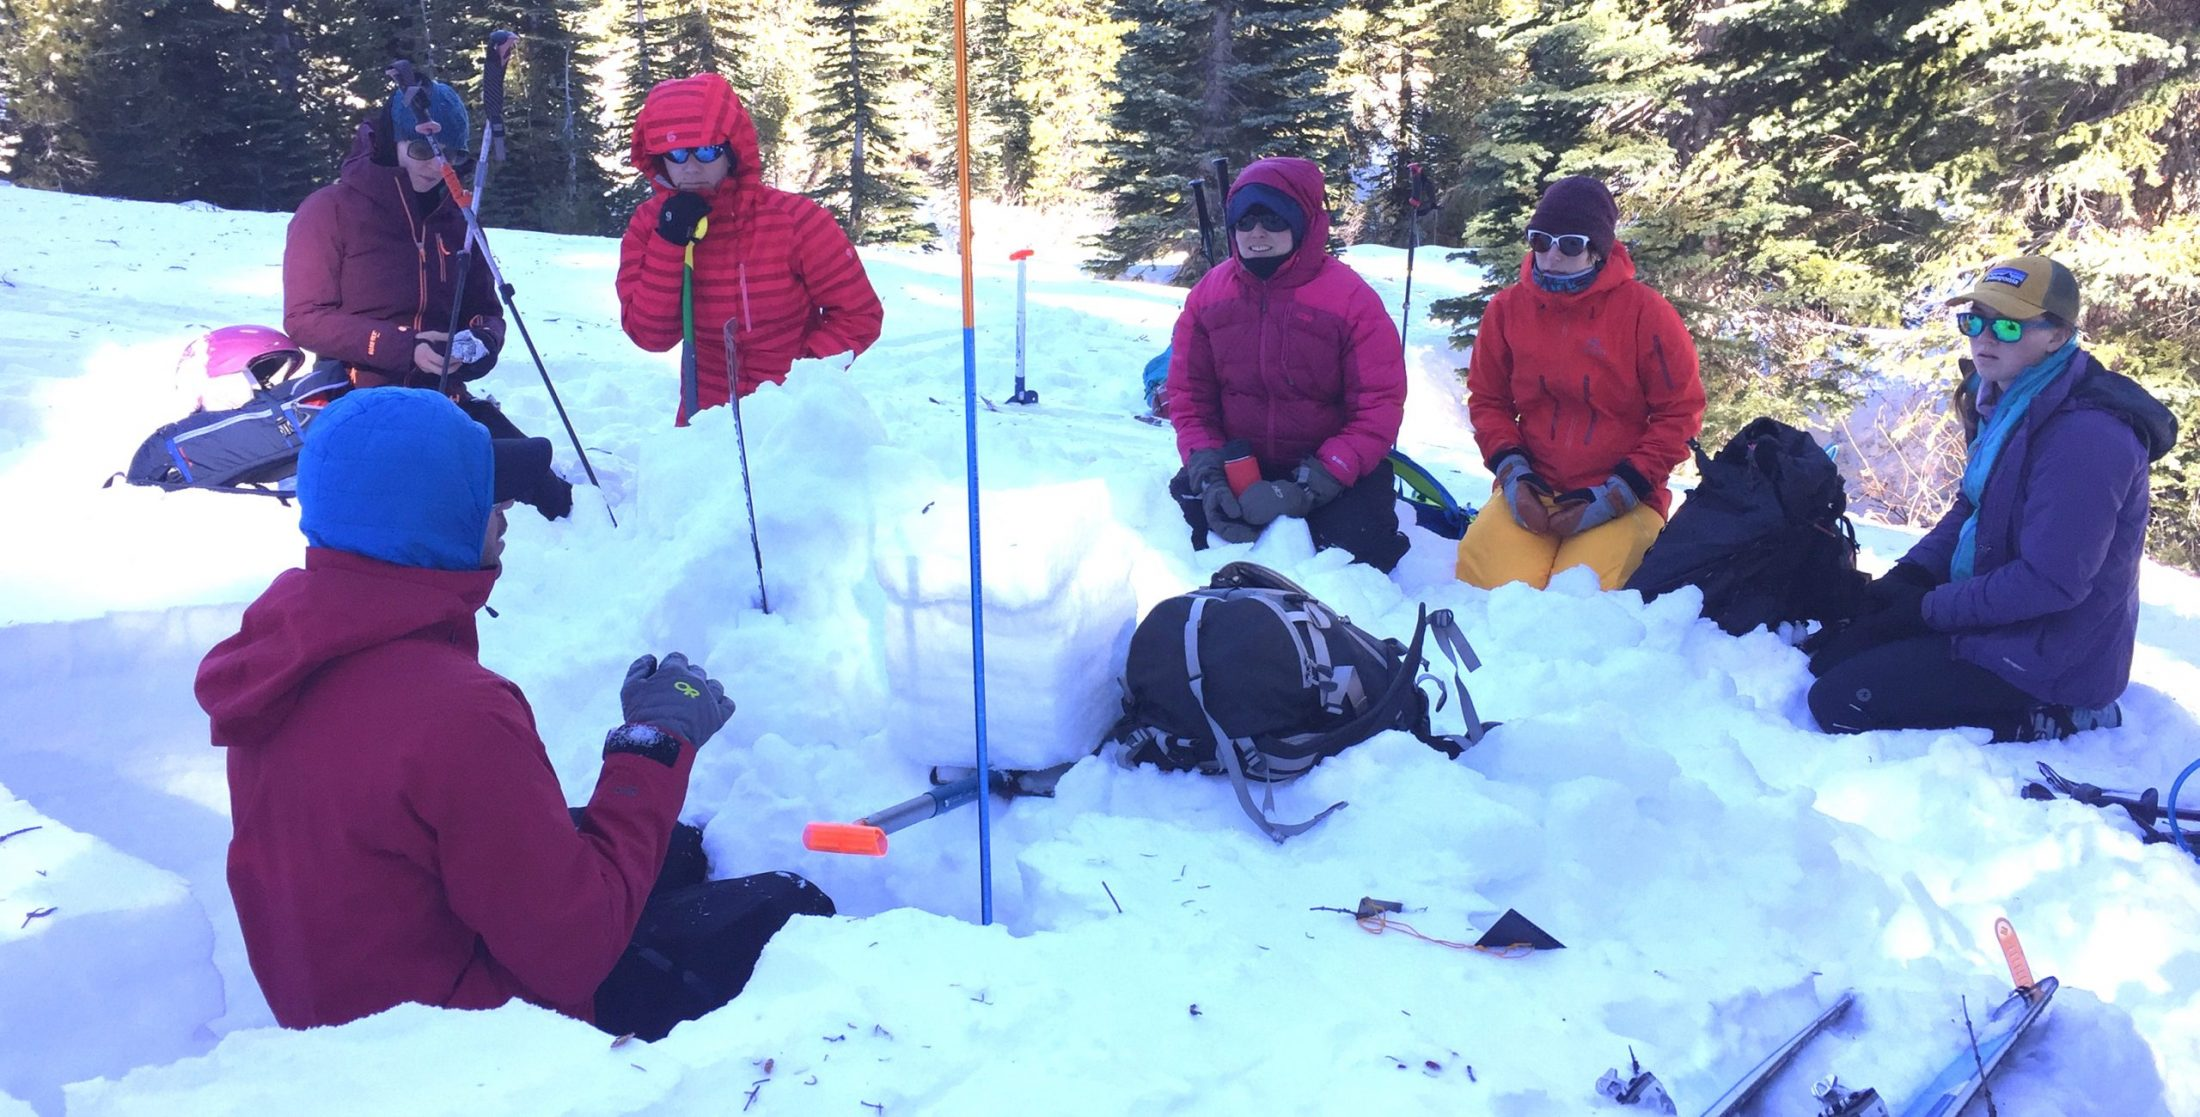 How Do I Become an AIARE Avalanche Instructor?